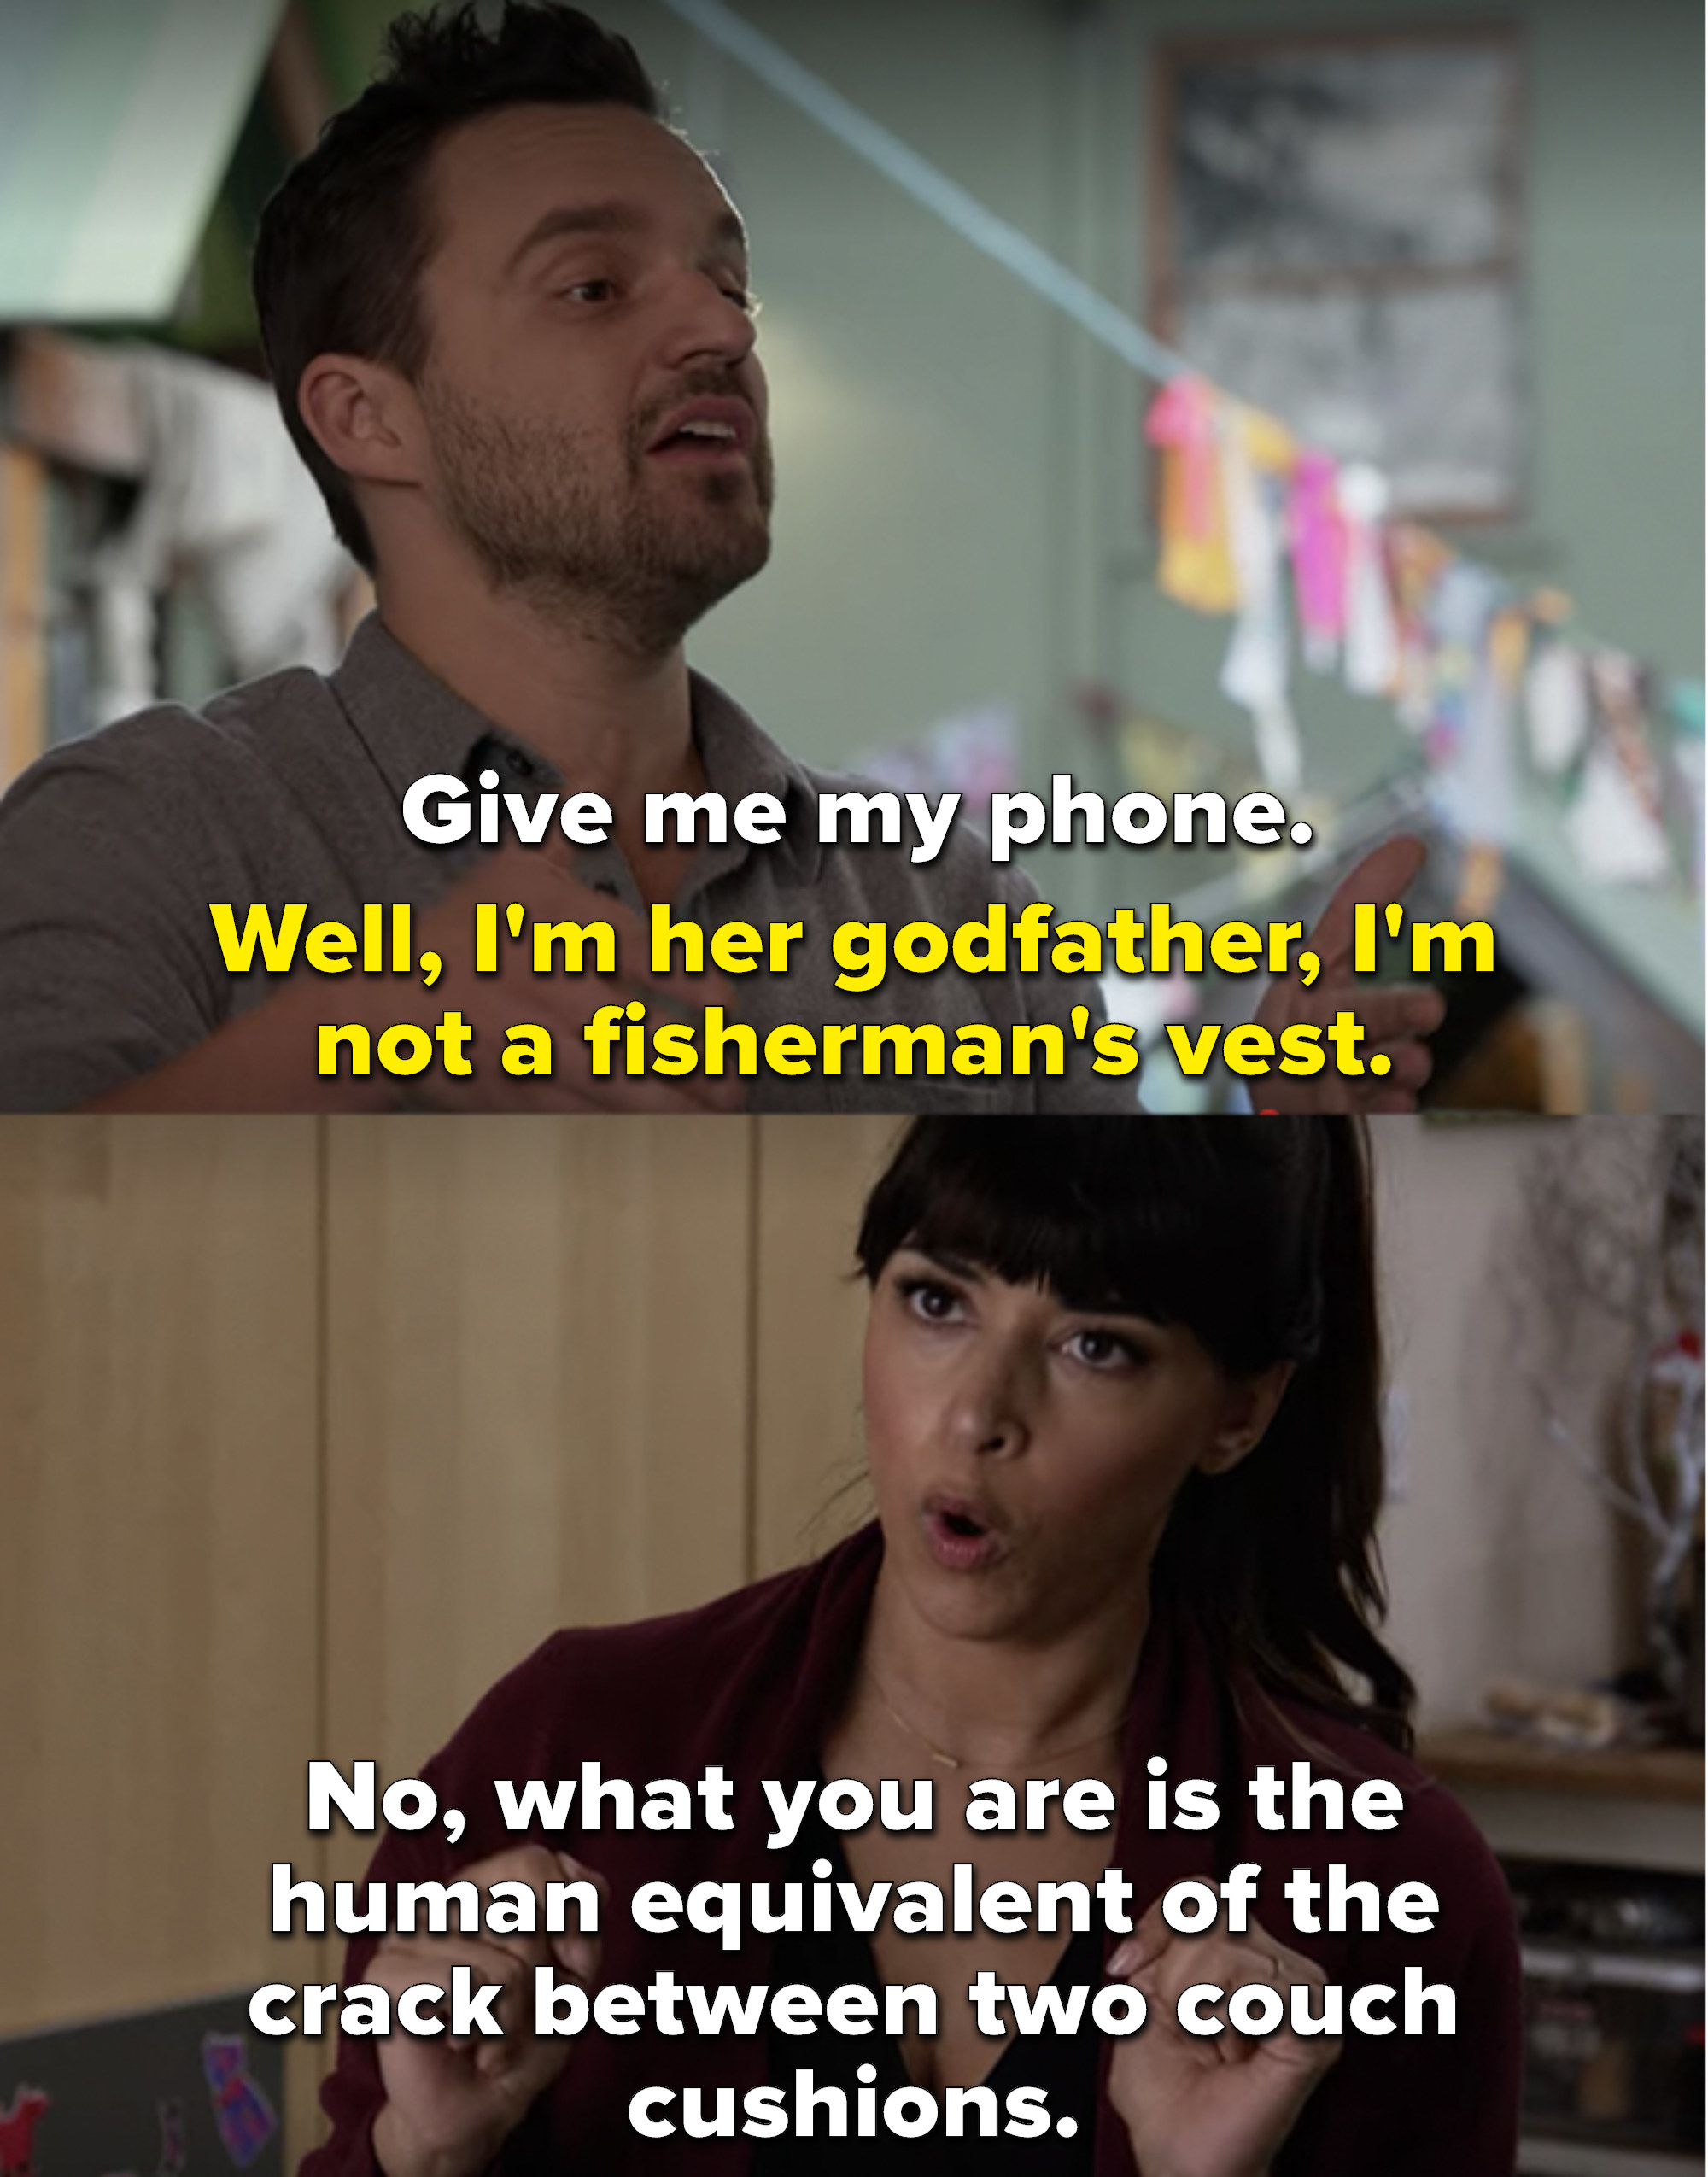 """Nick says he doesn't have her phone because he's not a fisherman's vest and Cece says, """"No, what you are is the human equivalent of the crack between two couch cushions"""""""